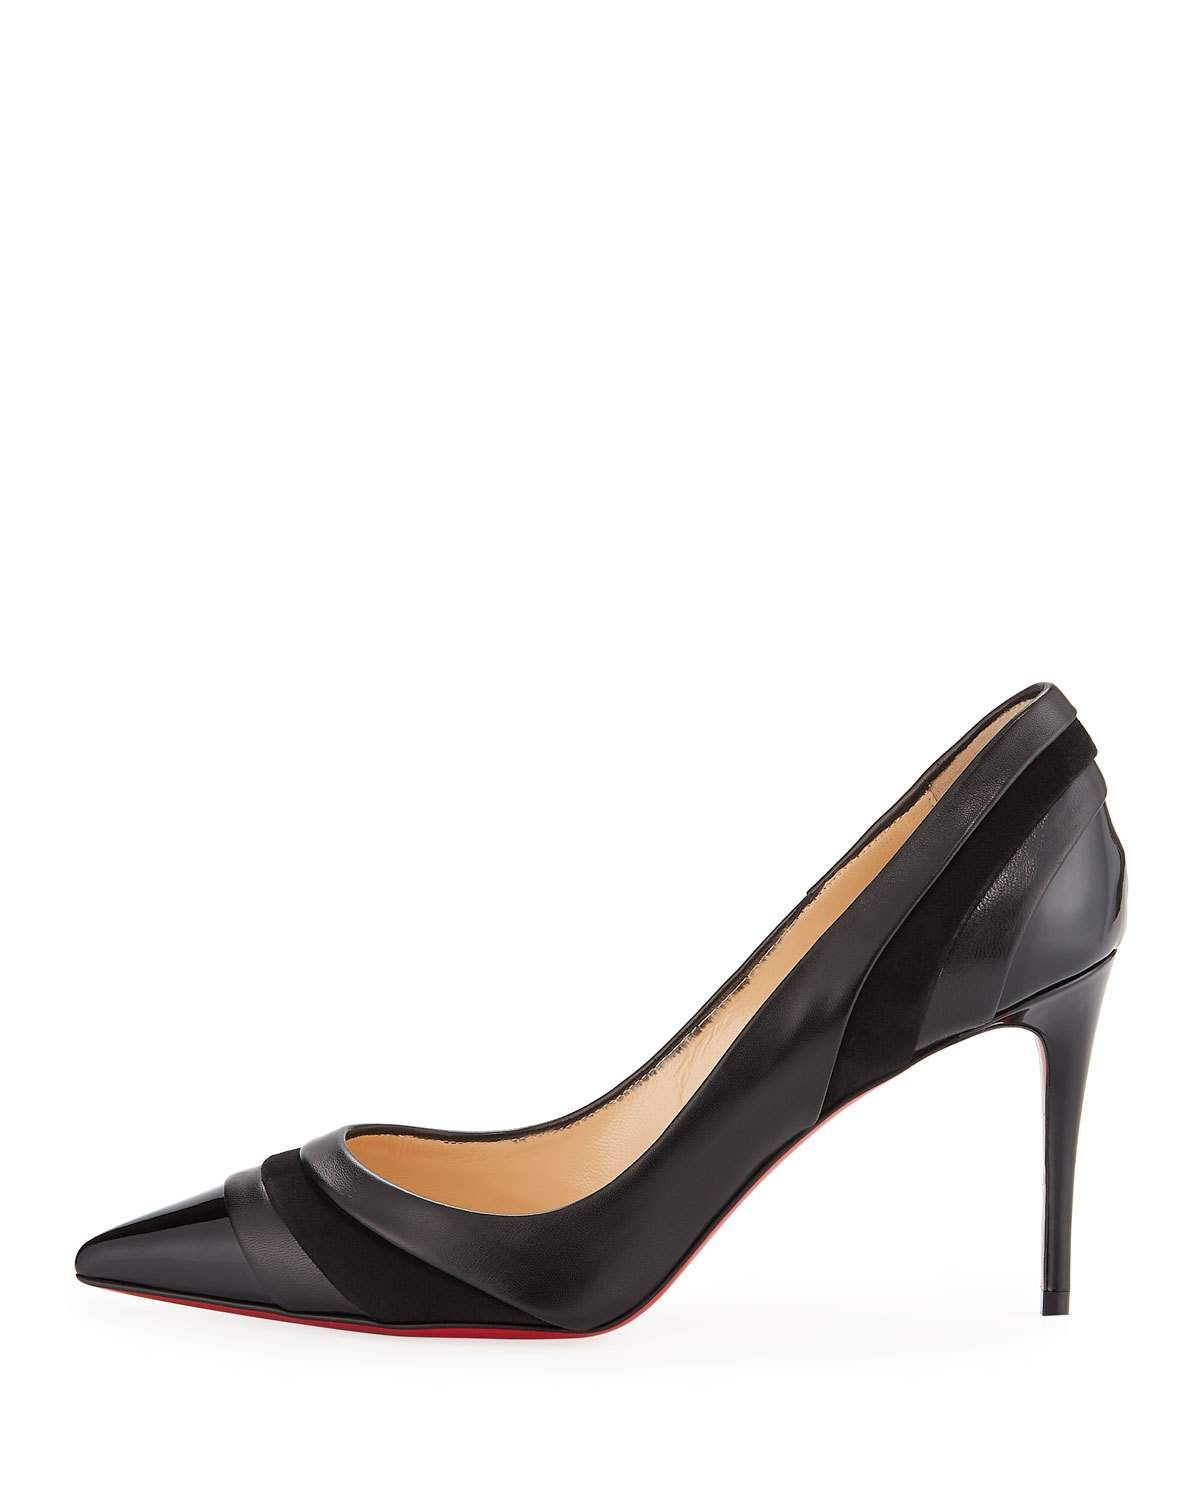 new product e14bf 948ec Christian Louboutin Eklectica 85mm Red Sole Pumps | Products ...